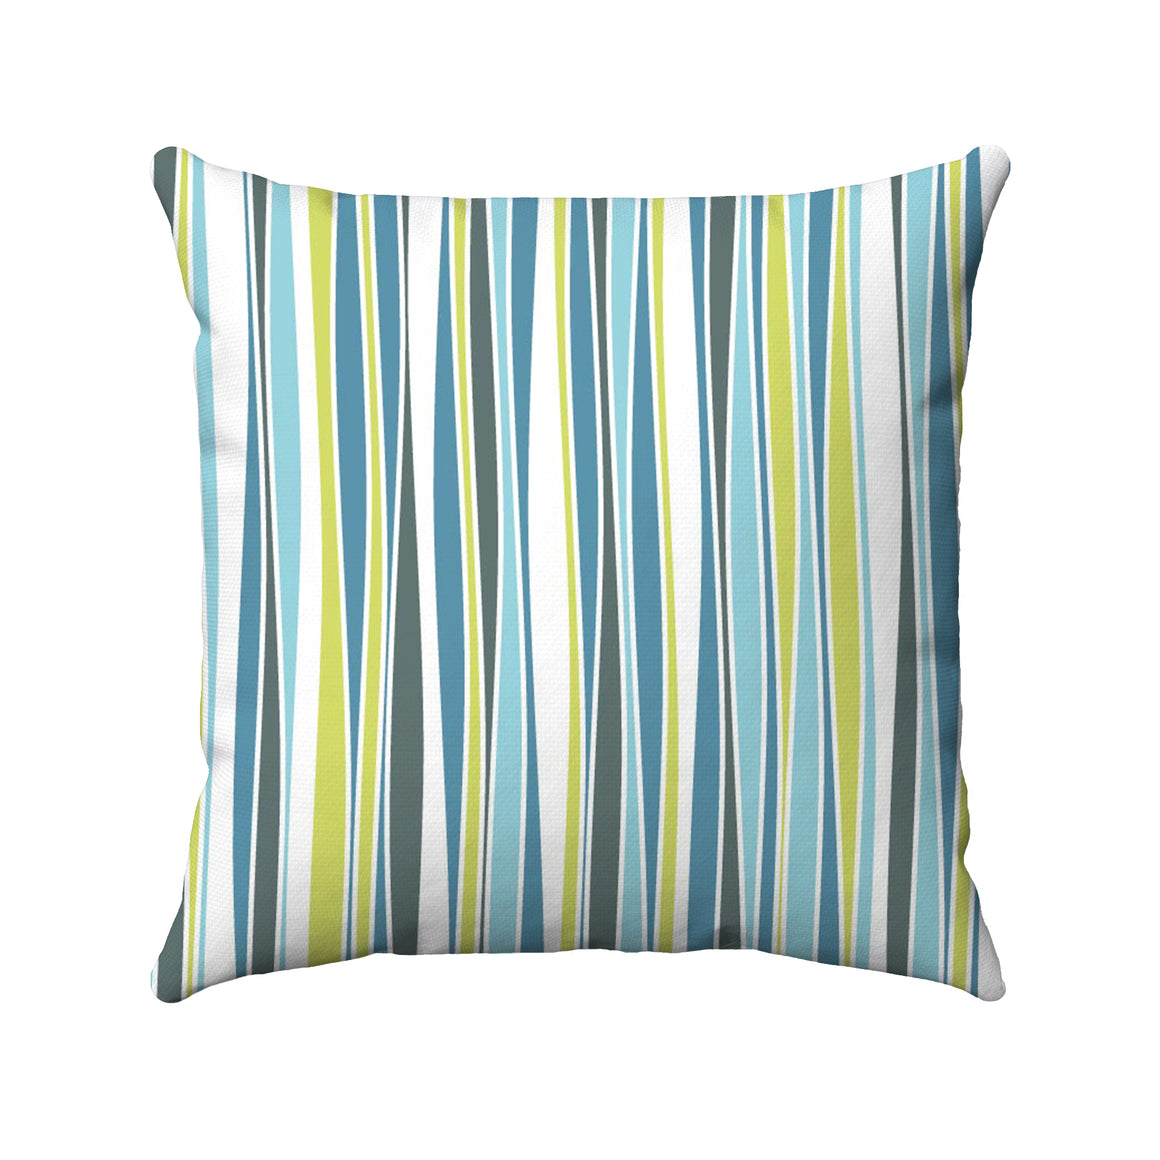 Green, aqua, blue, hunter colors randomly arranged in wavy vertical stripes with white borders.